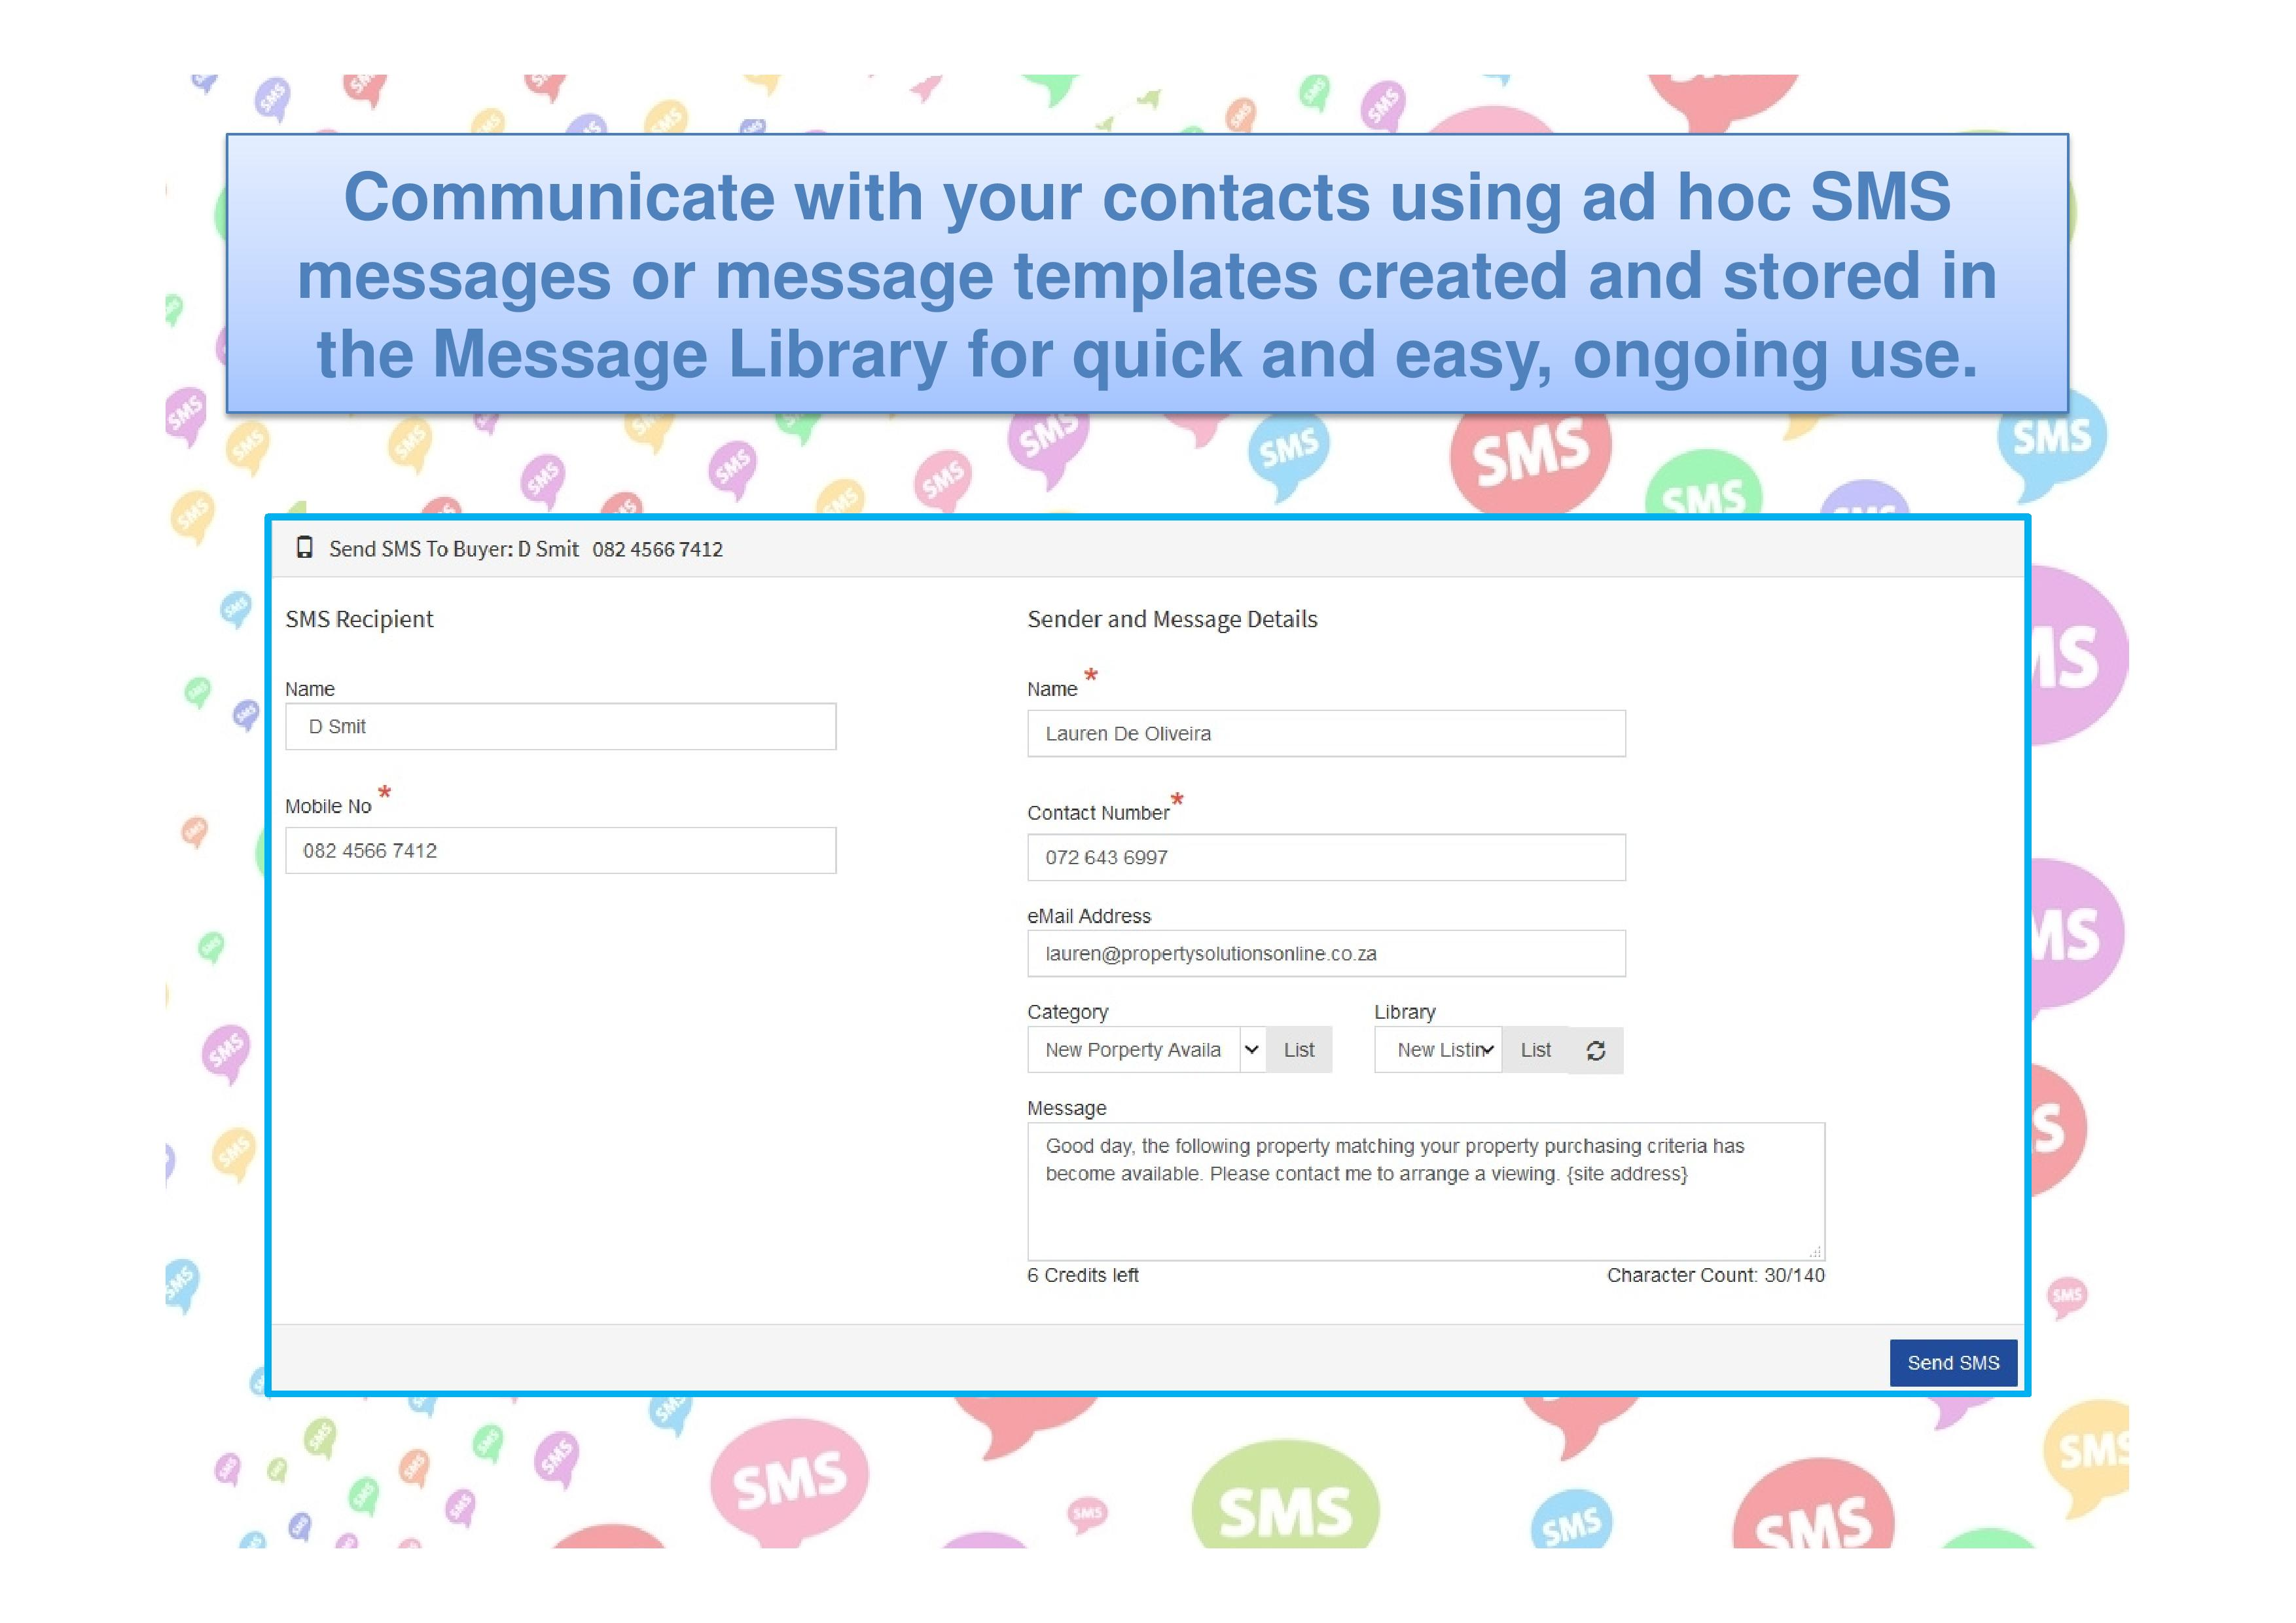 Communicate with your contacts using SMS messages.